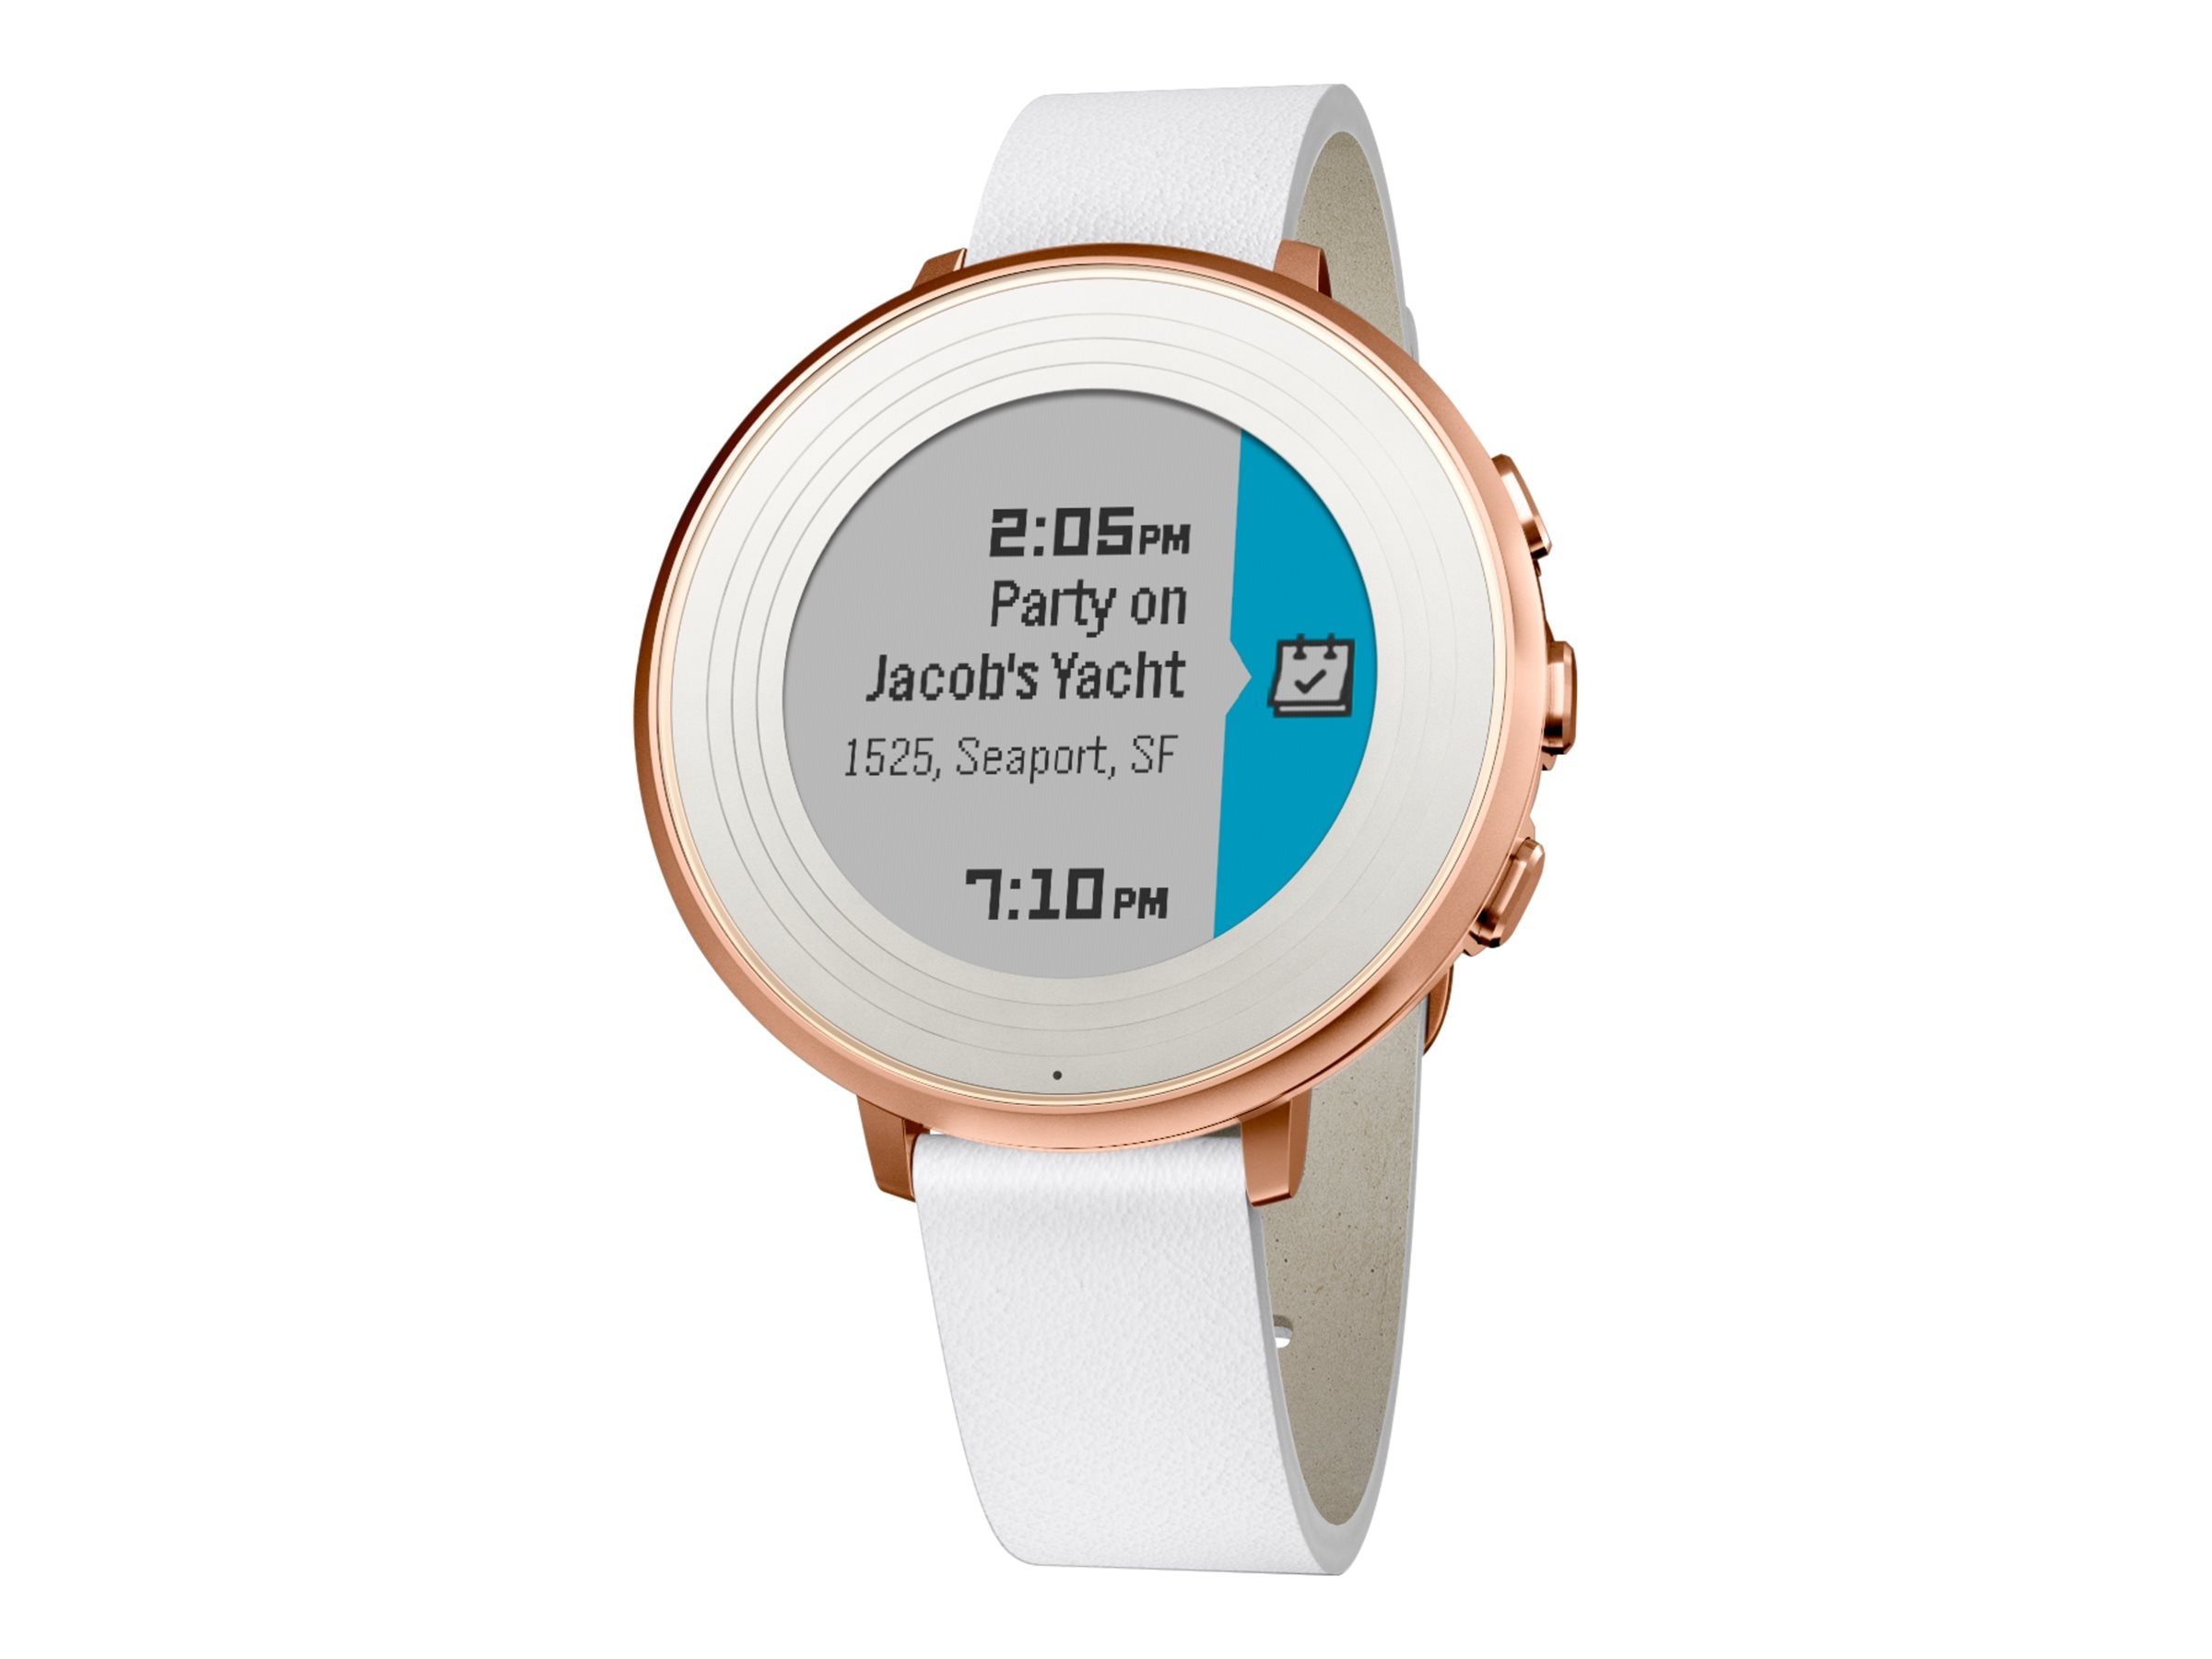 Pebble Round S4.0 Smartwatch, Rose Gold, 14mm